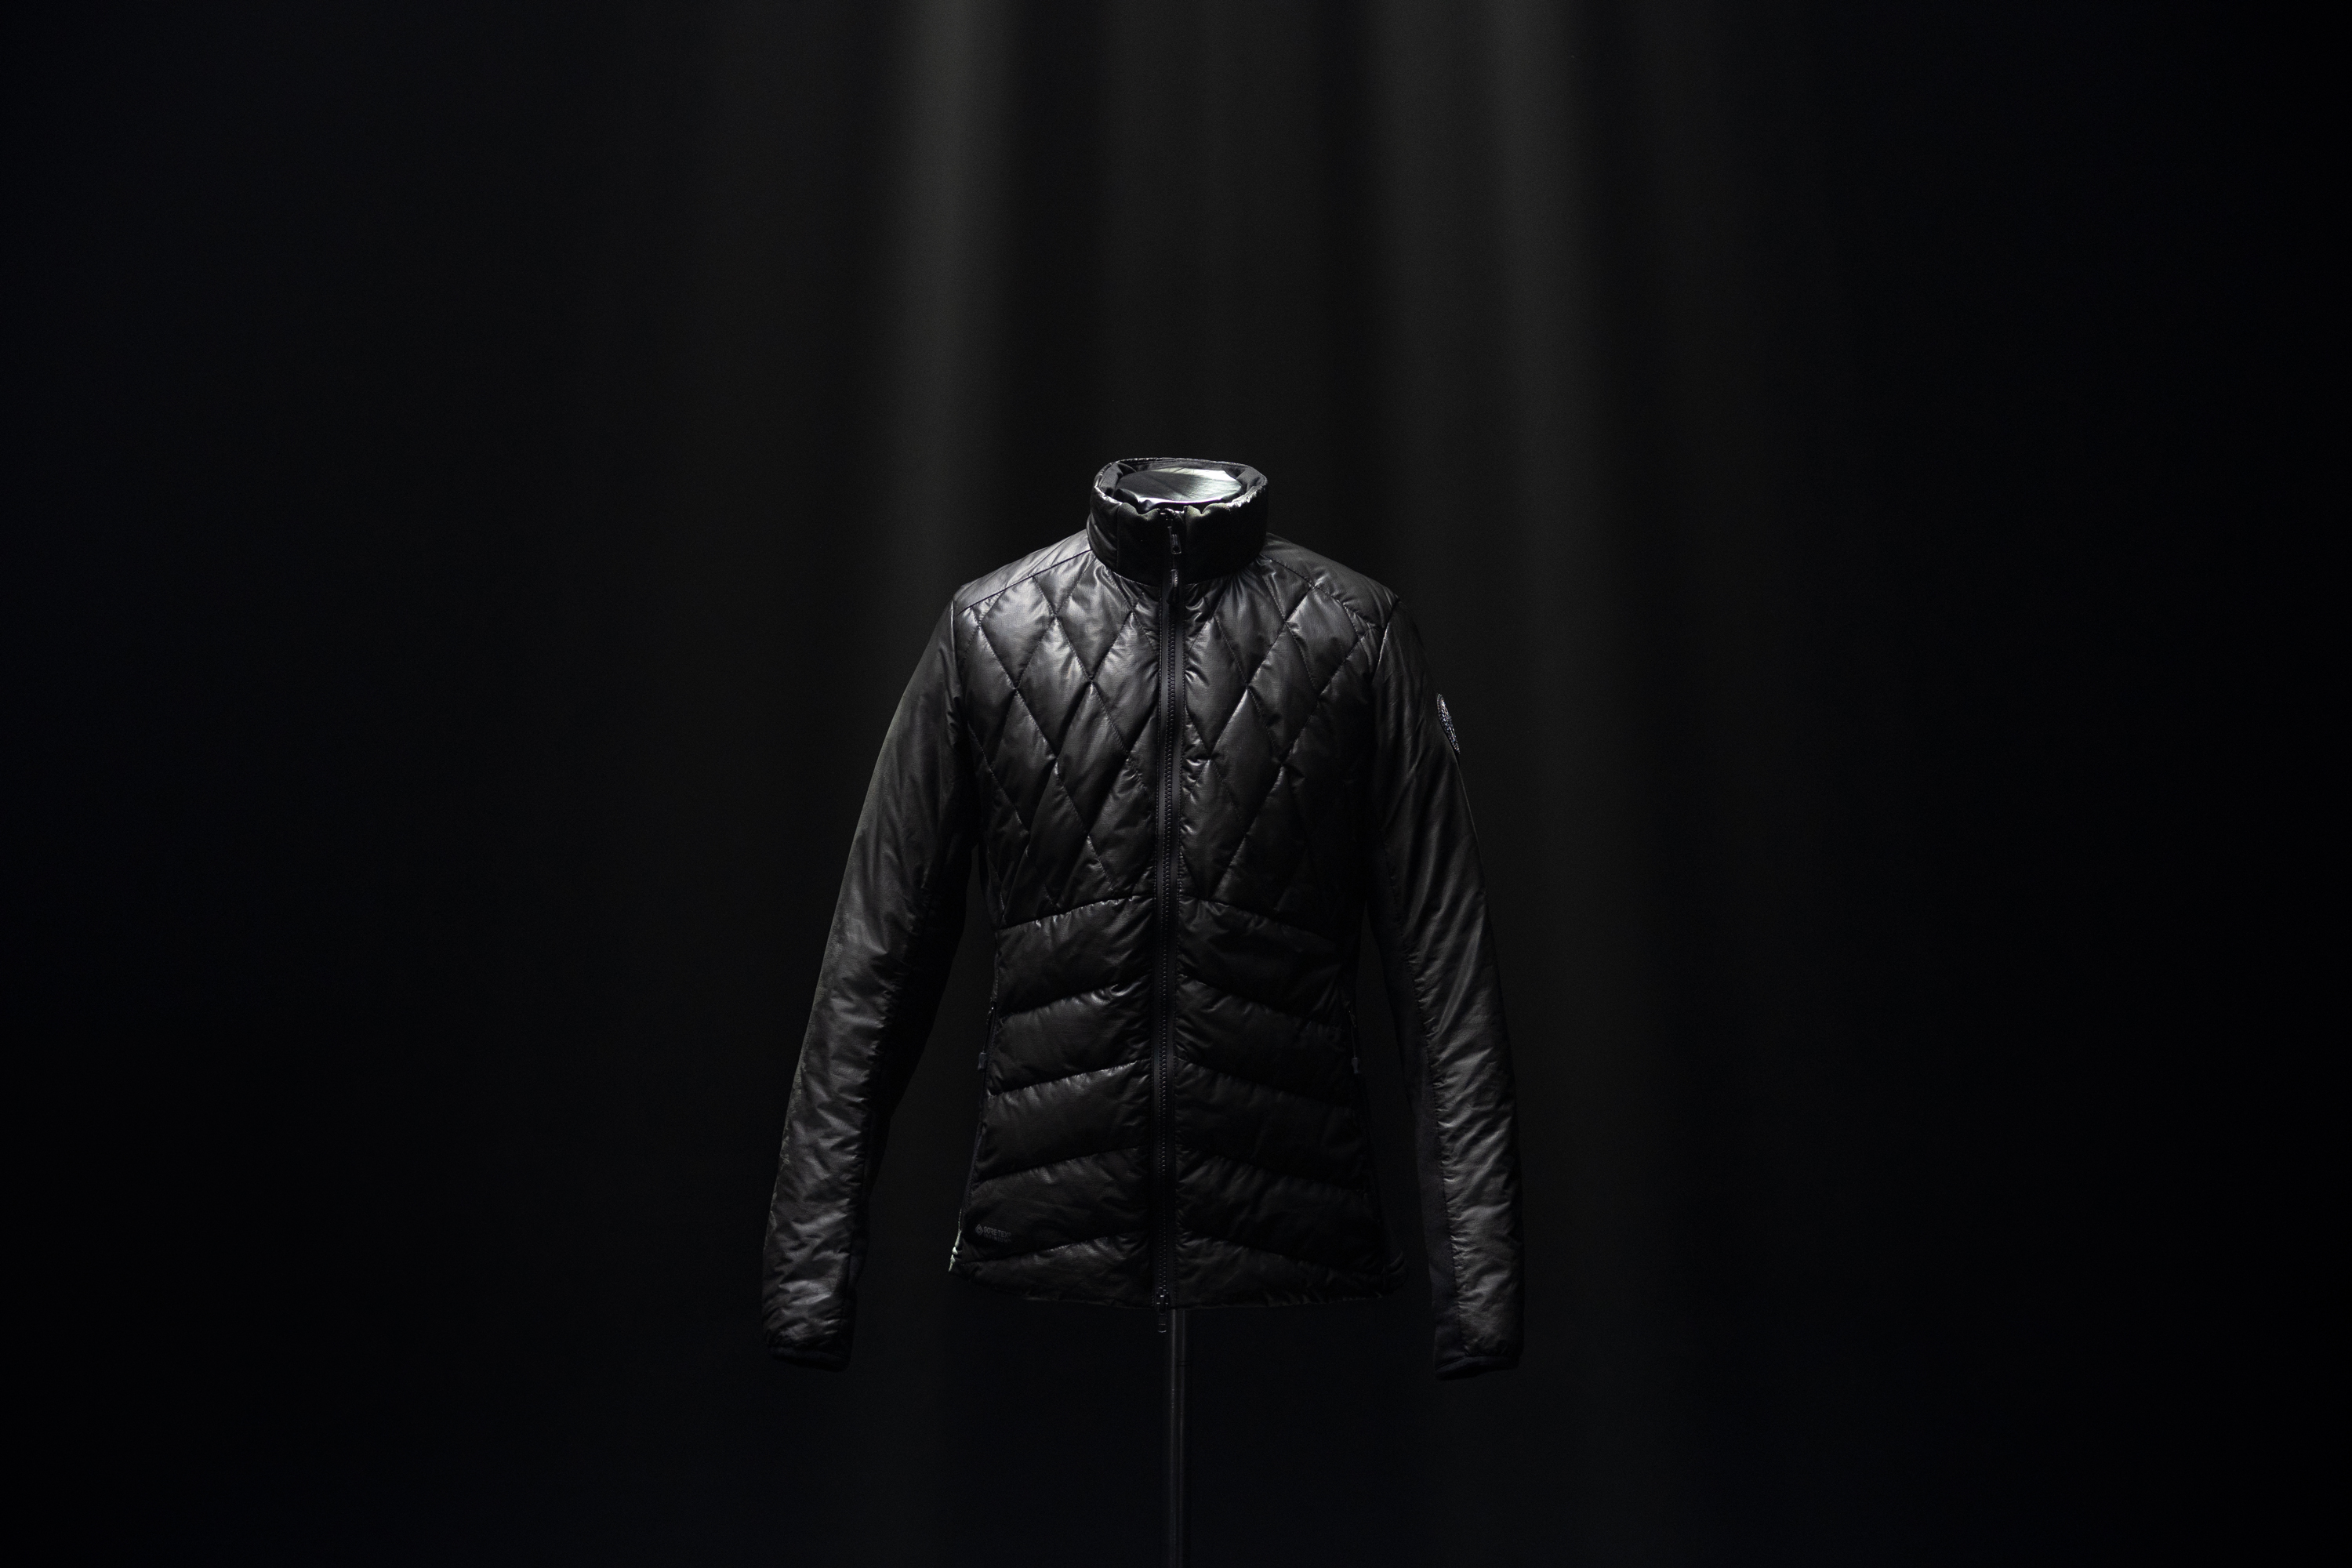 581567c0786 Canada Goose's Latest Jacket Looks Straight Out of 'Game of Thrones ...